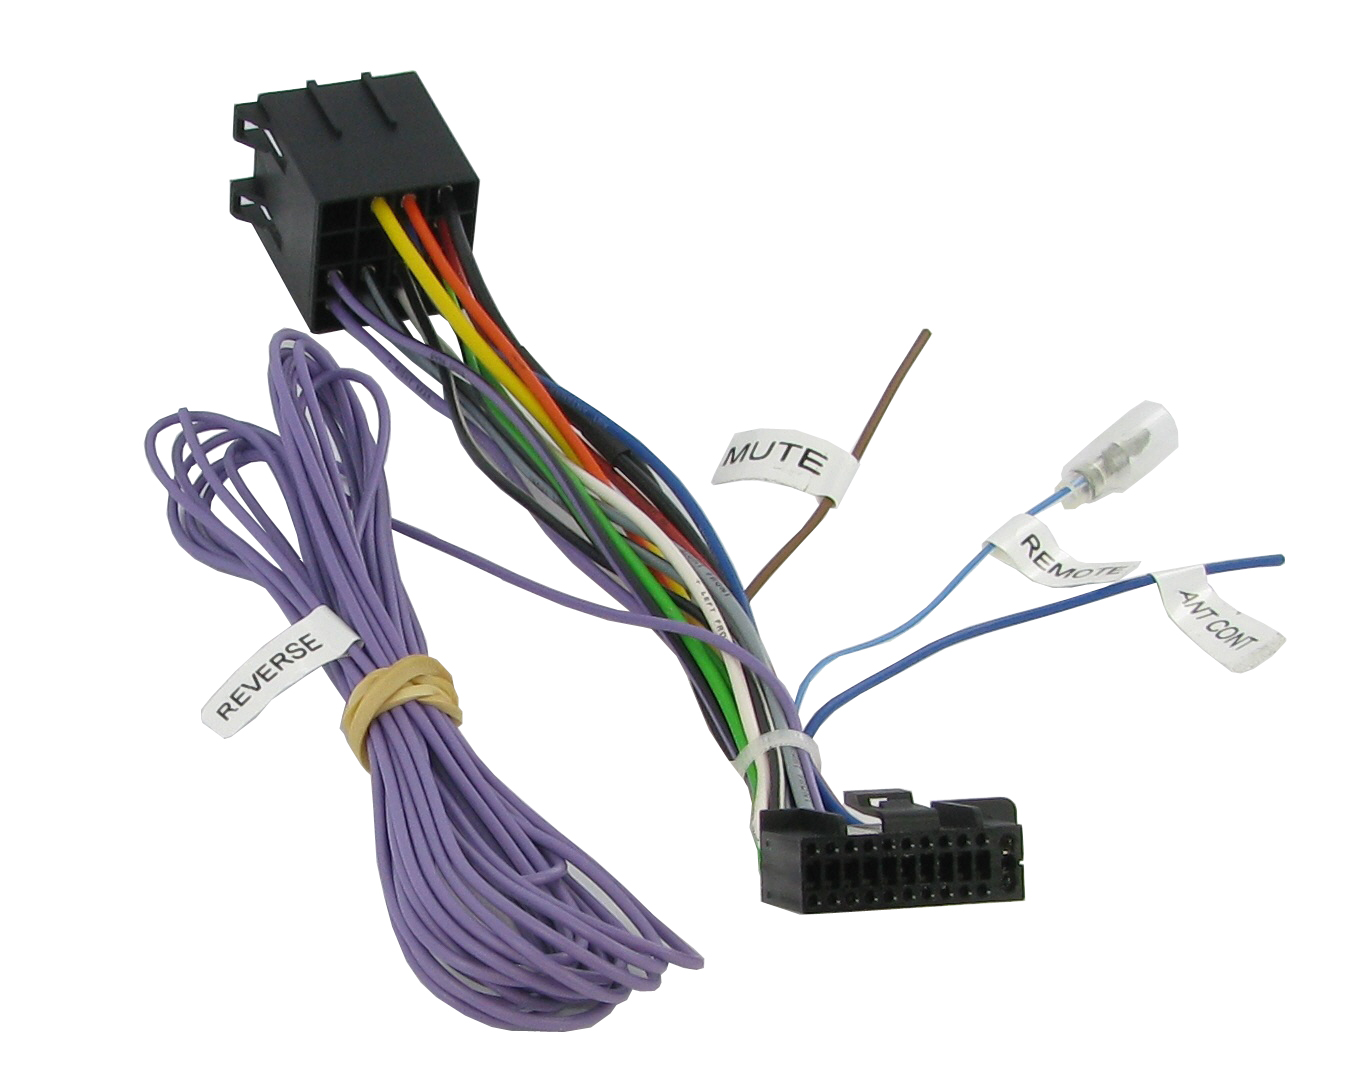 ct21kw05_s installer com kenwood category products category kenwood dpx791bh wiring diagram at gsmportal.co